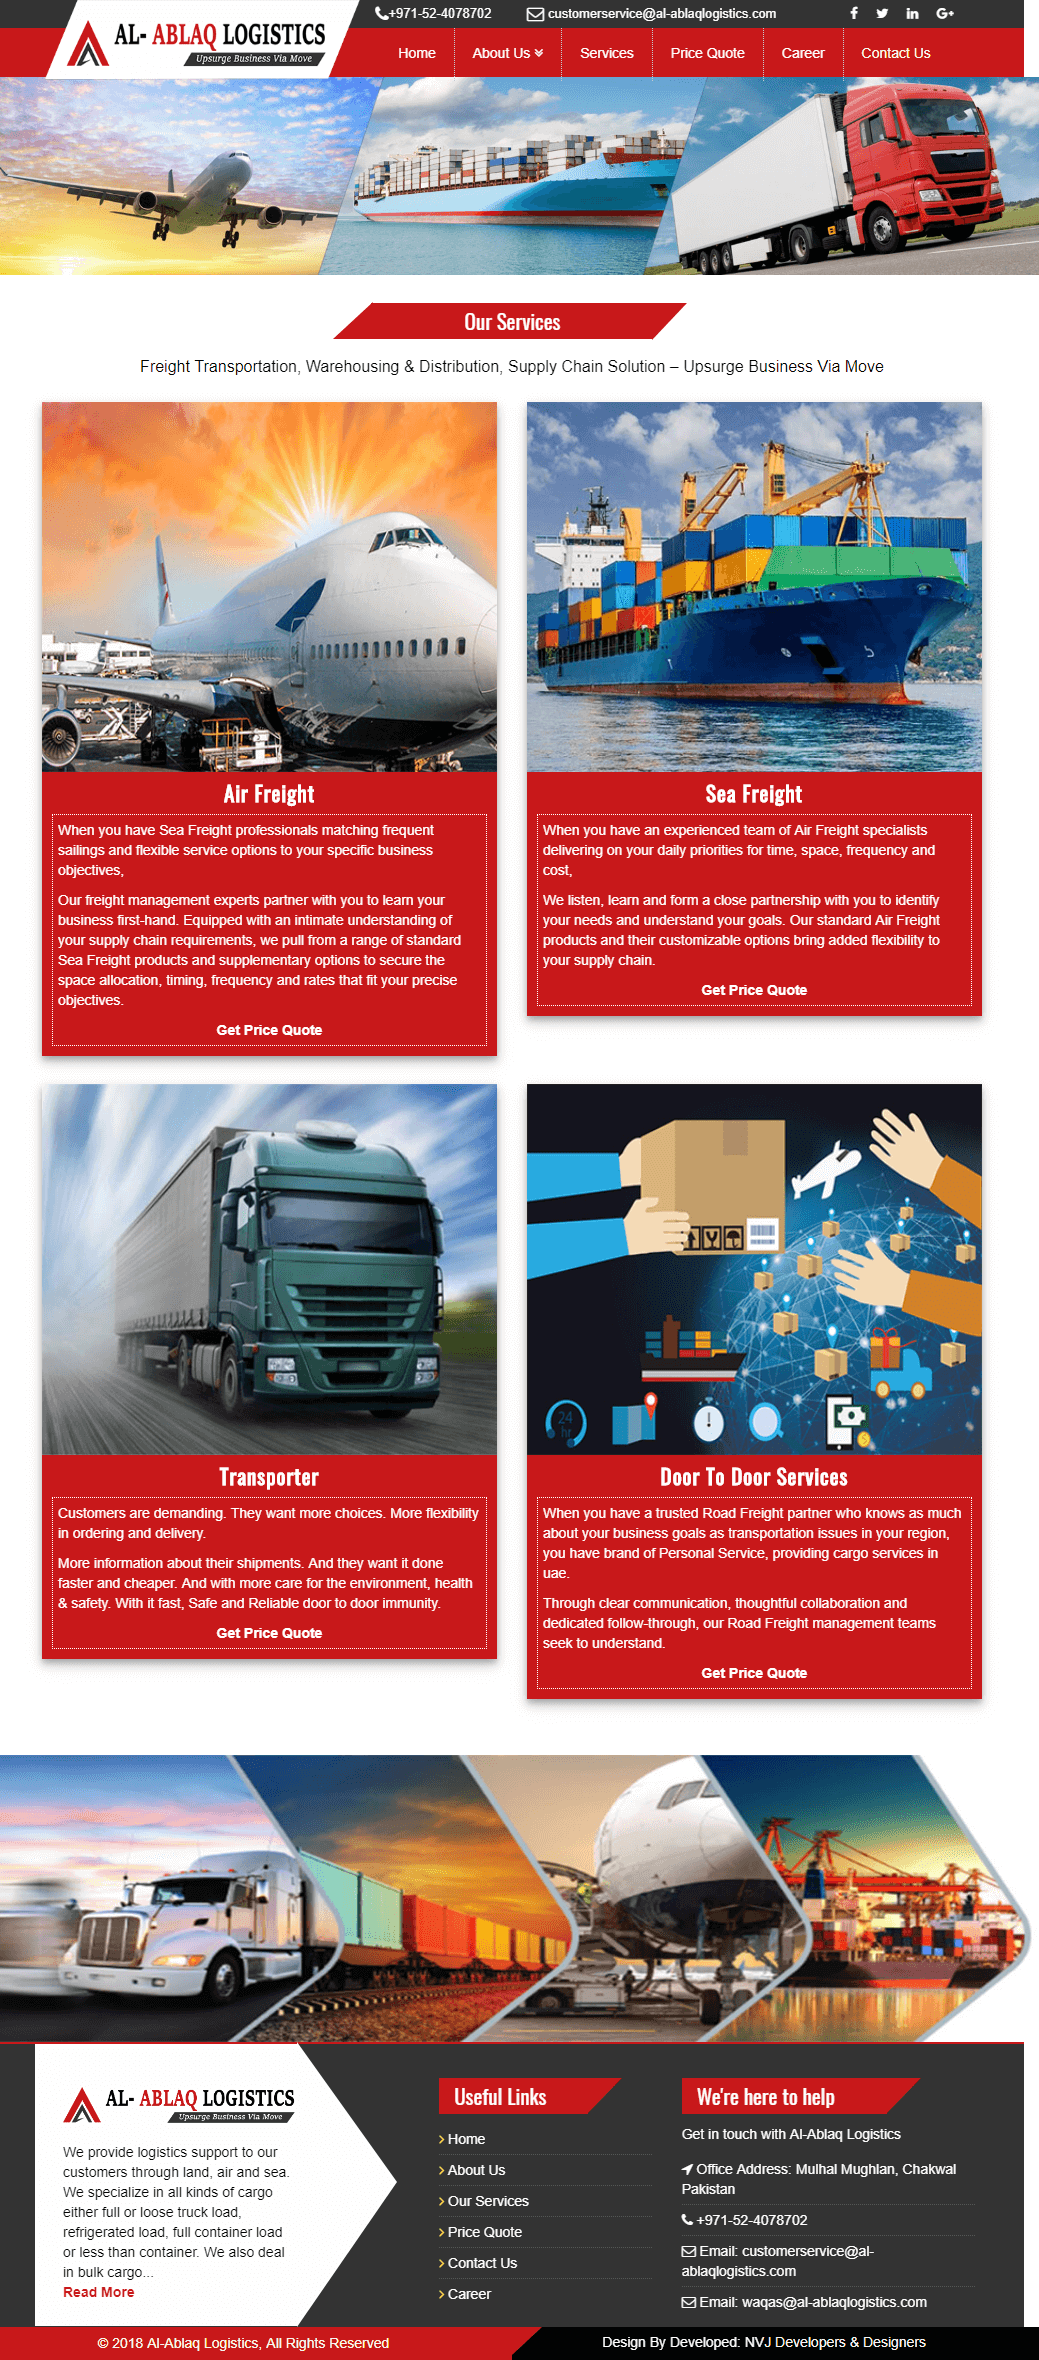 NVJ-Developers-Freight-Forwarder-website-design-1